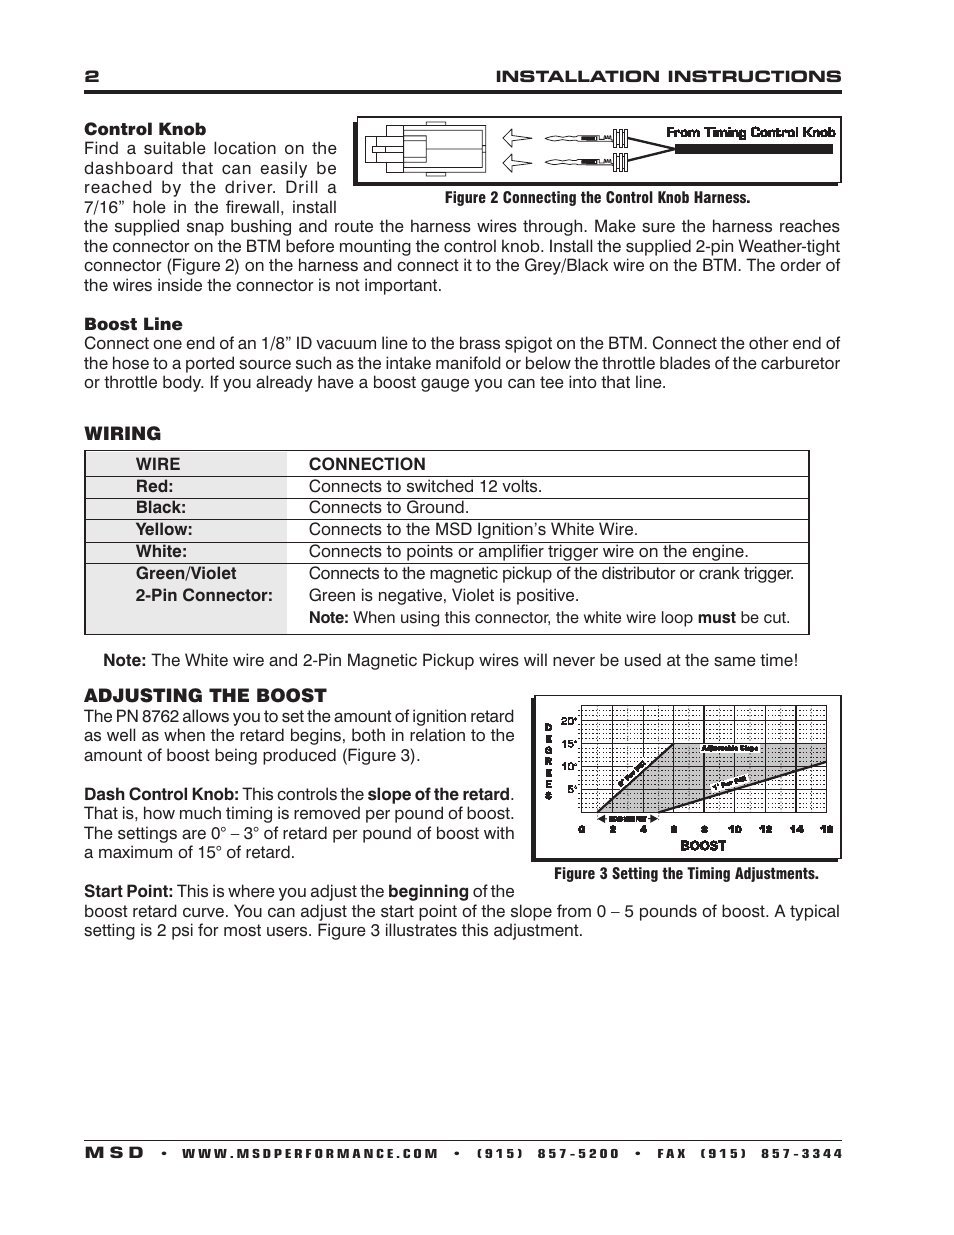 hight resolution of msd 8762 boost timing master for use with msd ignition control installation user manual page 2 4